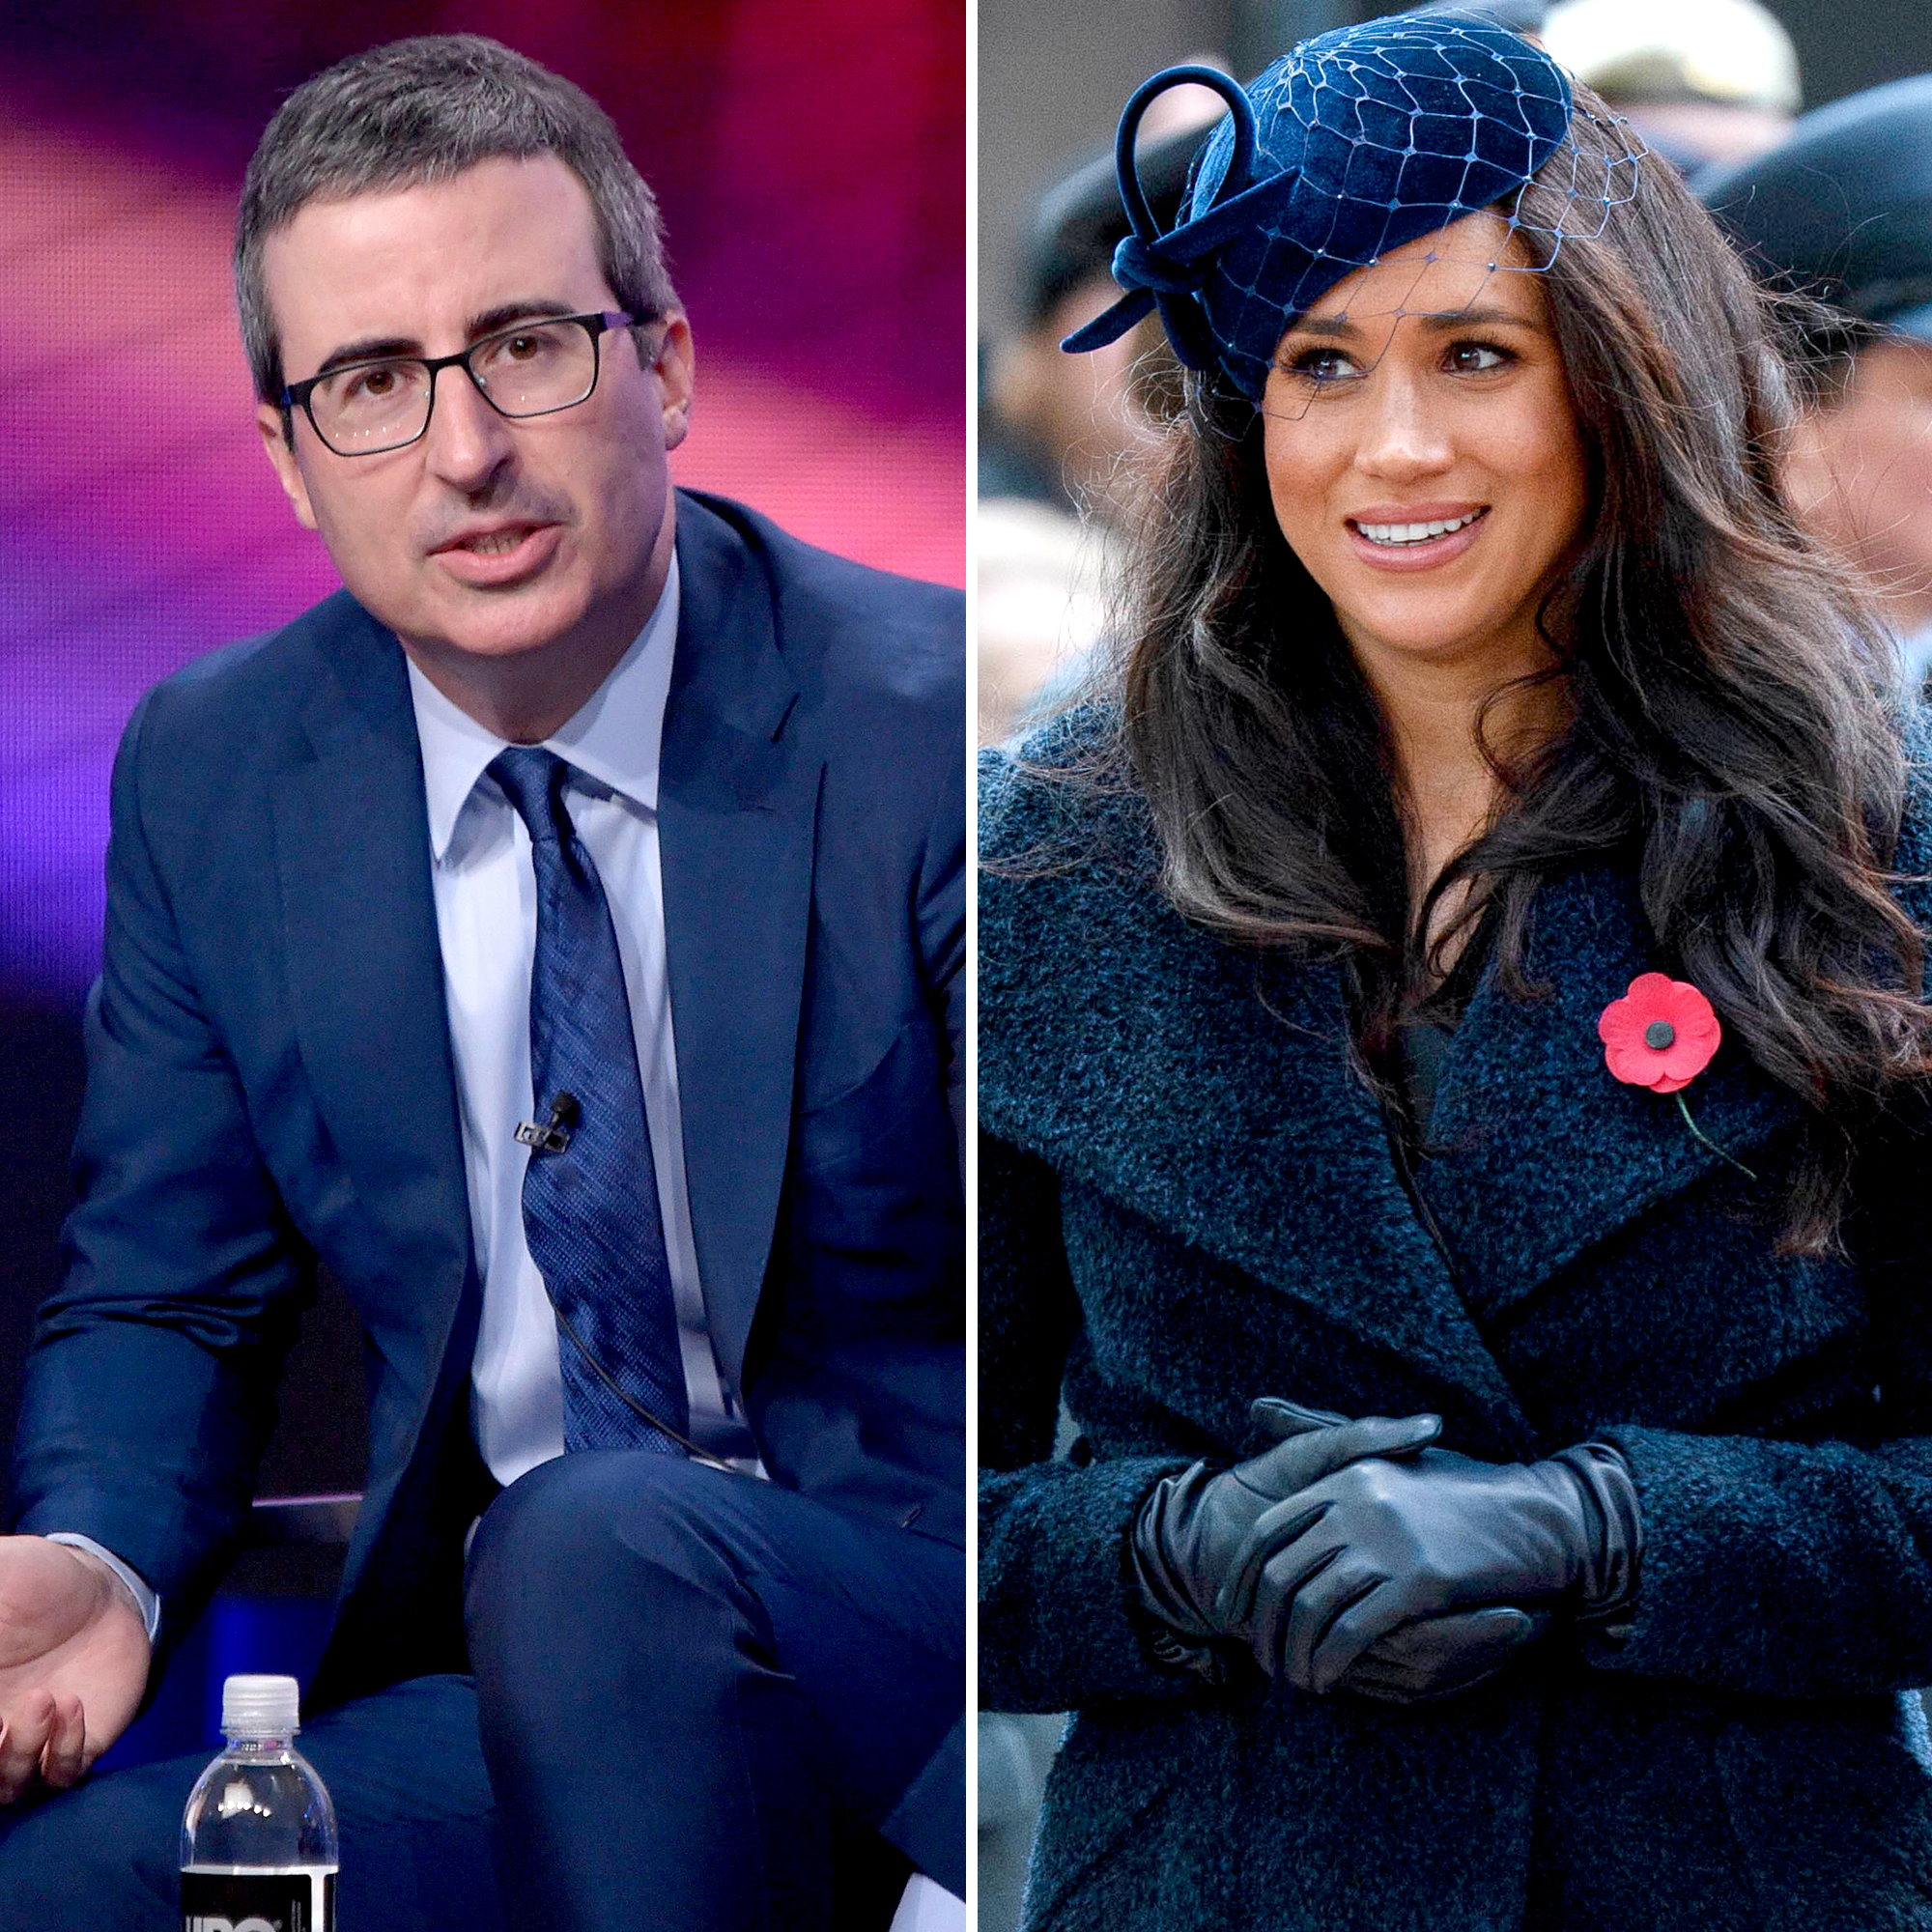 John Oliver Warned Meghan Markle About Joining the Royal Family in 2018